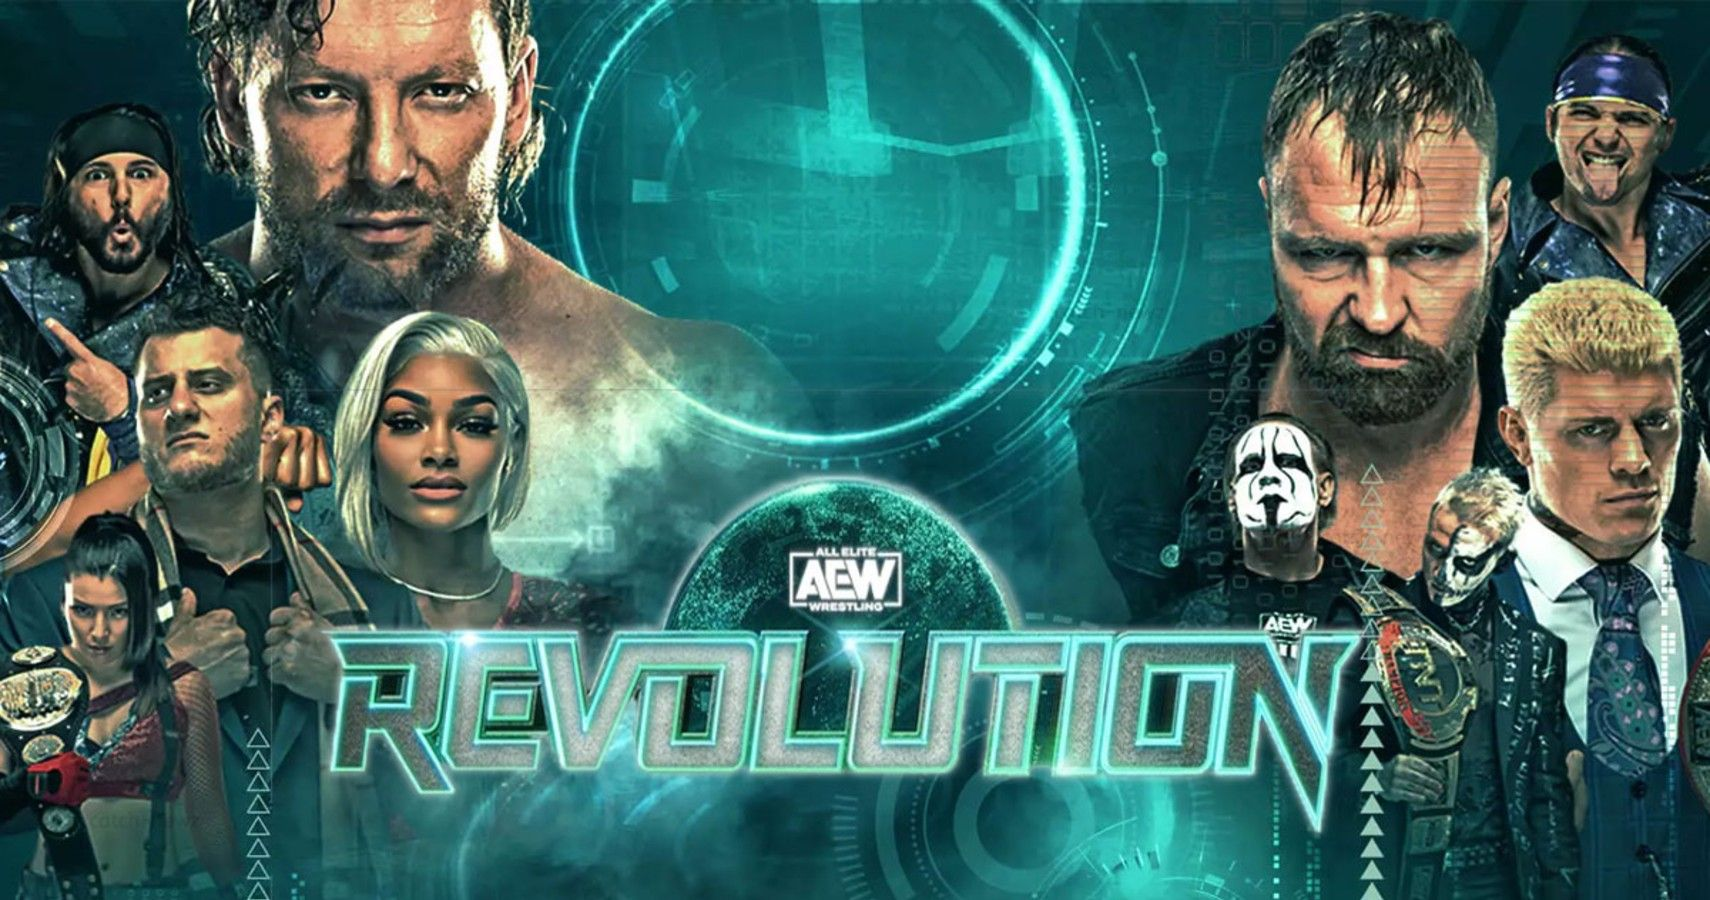 AEW Hosting Revolution Event In Cinemark Theaters On March 7th